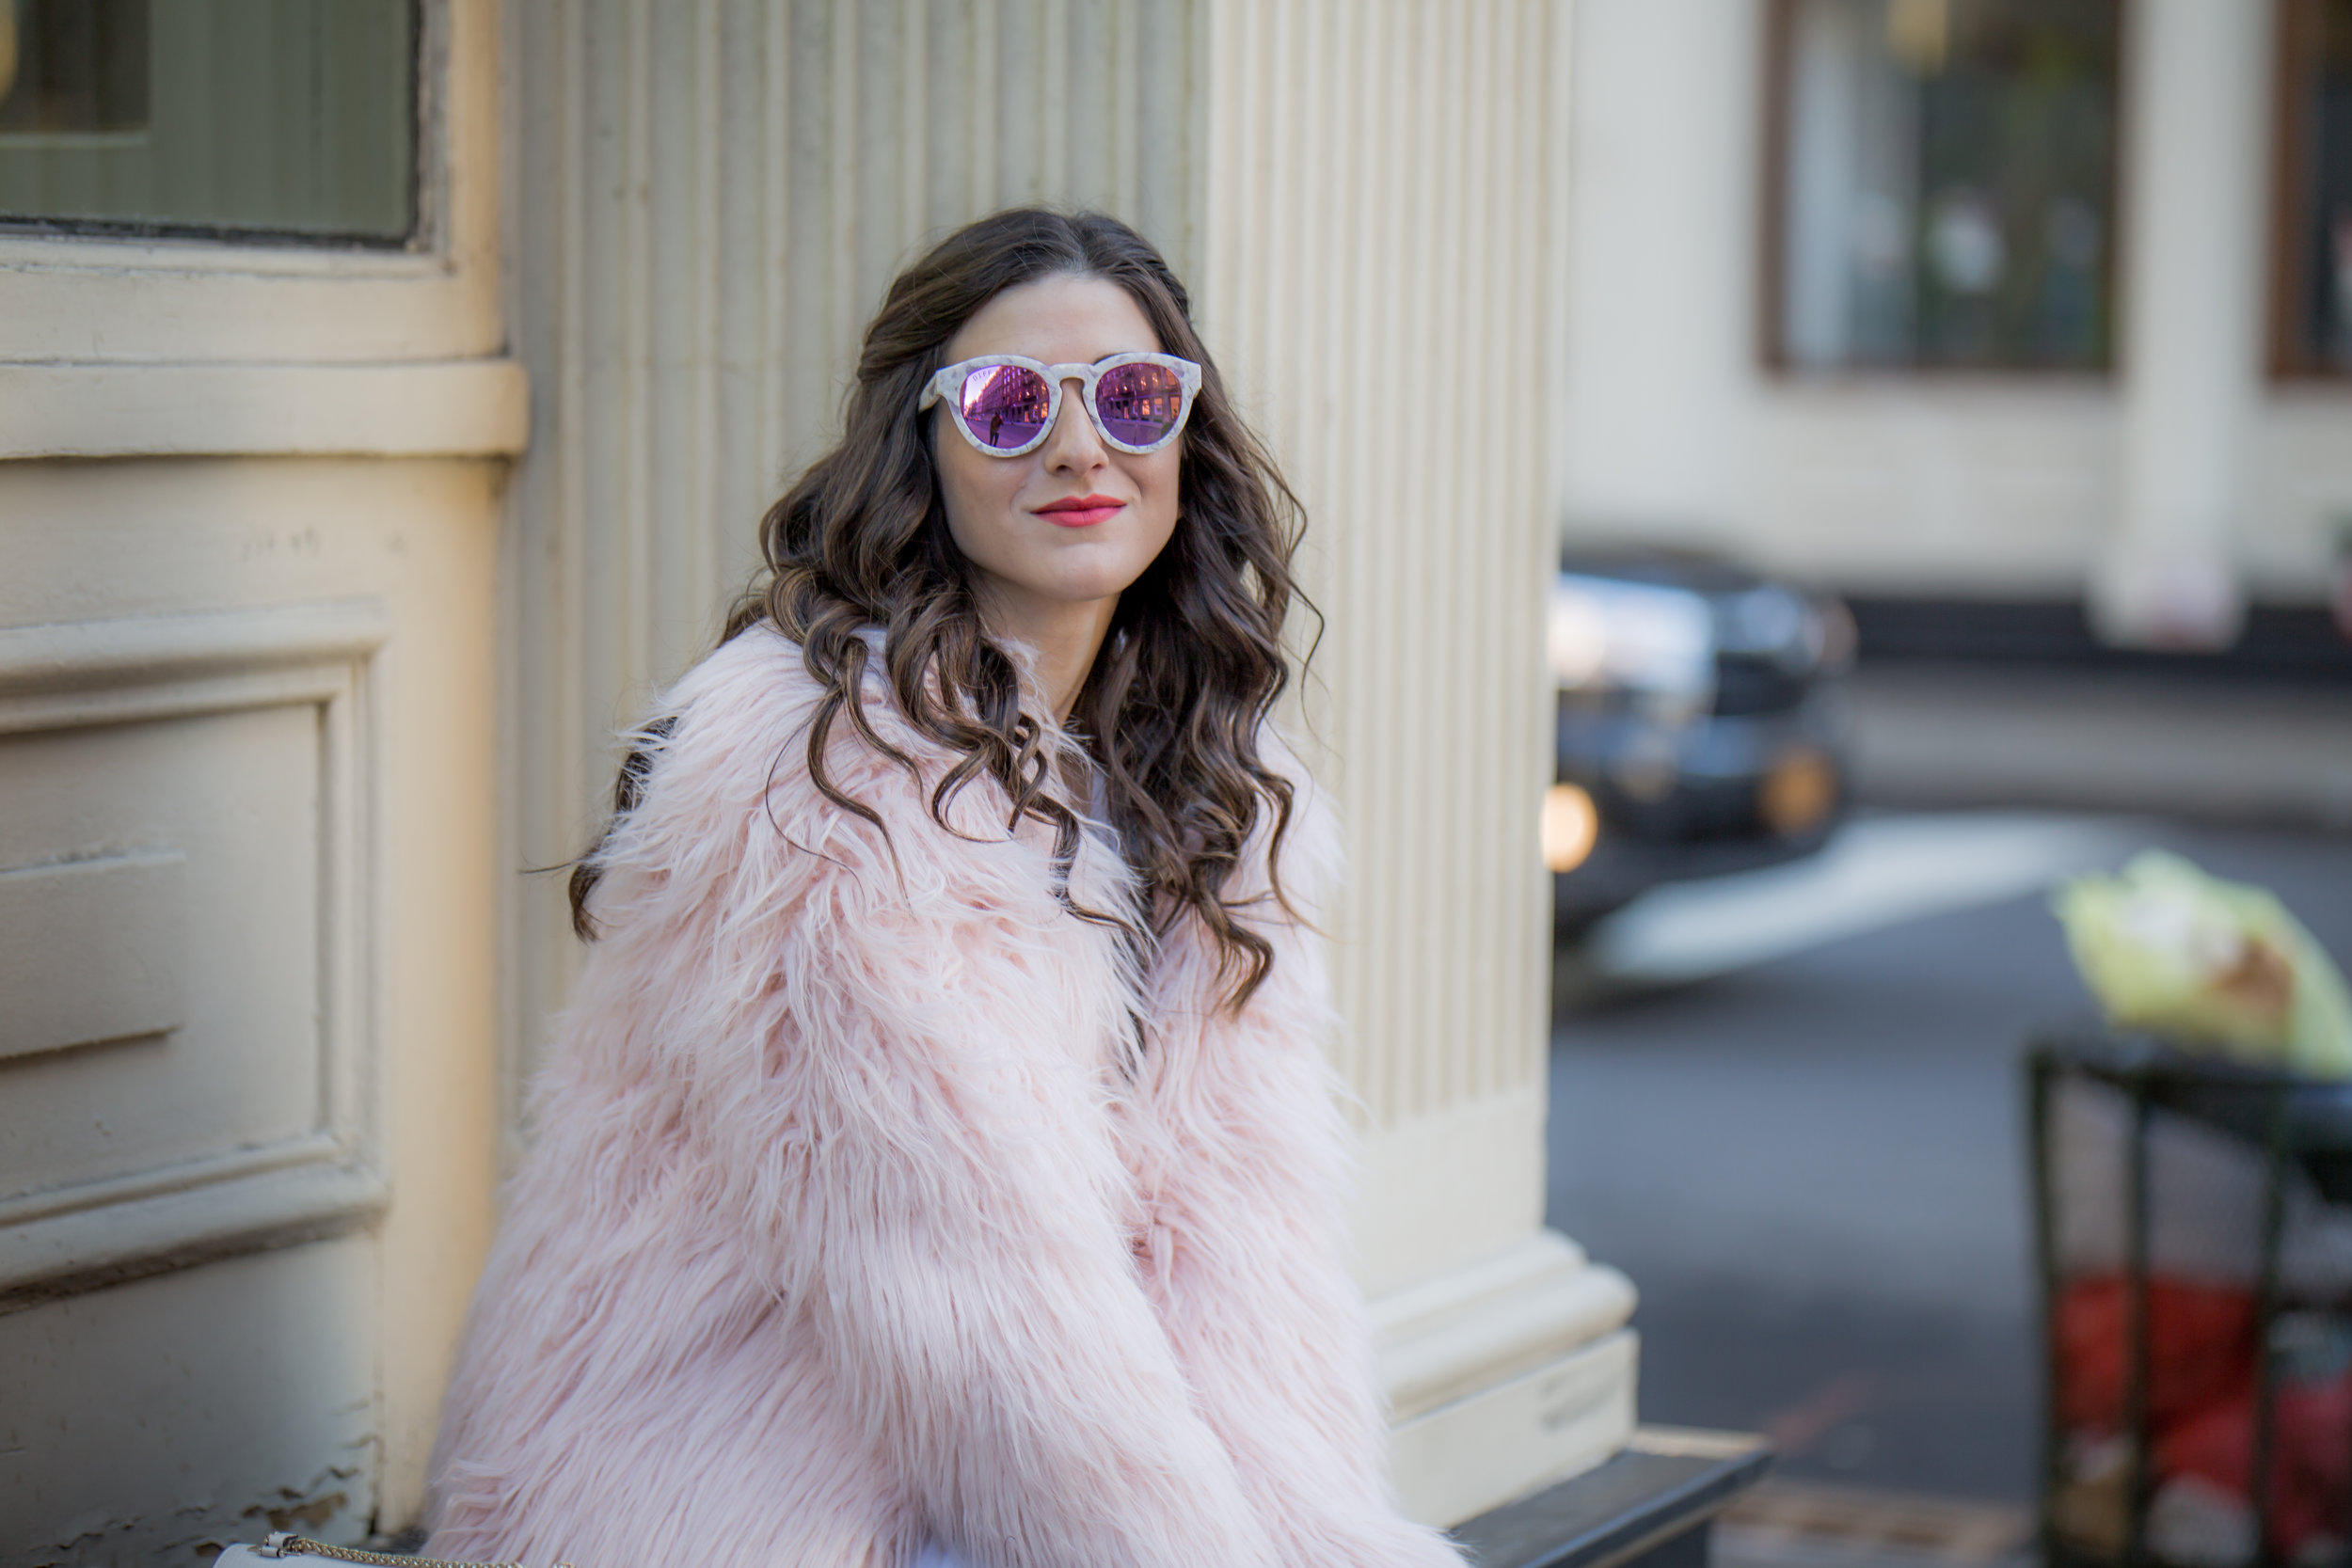 Pink Faux Fur Jacket White Jeans The Best Career Advice Esther Santer Fashion Blog NYC Street Style Blogger Outfit OOTD Trendy Winter Whites Henri Bendel Bag Tan Booties Girl Women Shop Sale Hair What To Wear Wearing Model Photoshoot Accessories Shoes.jpg